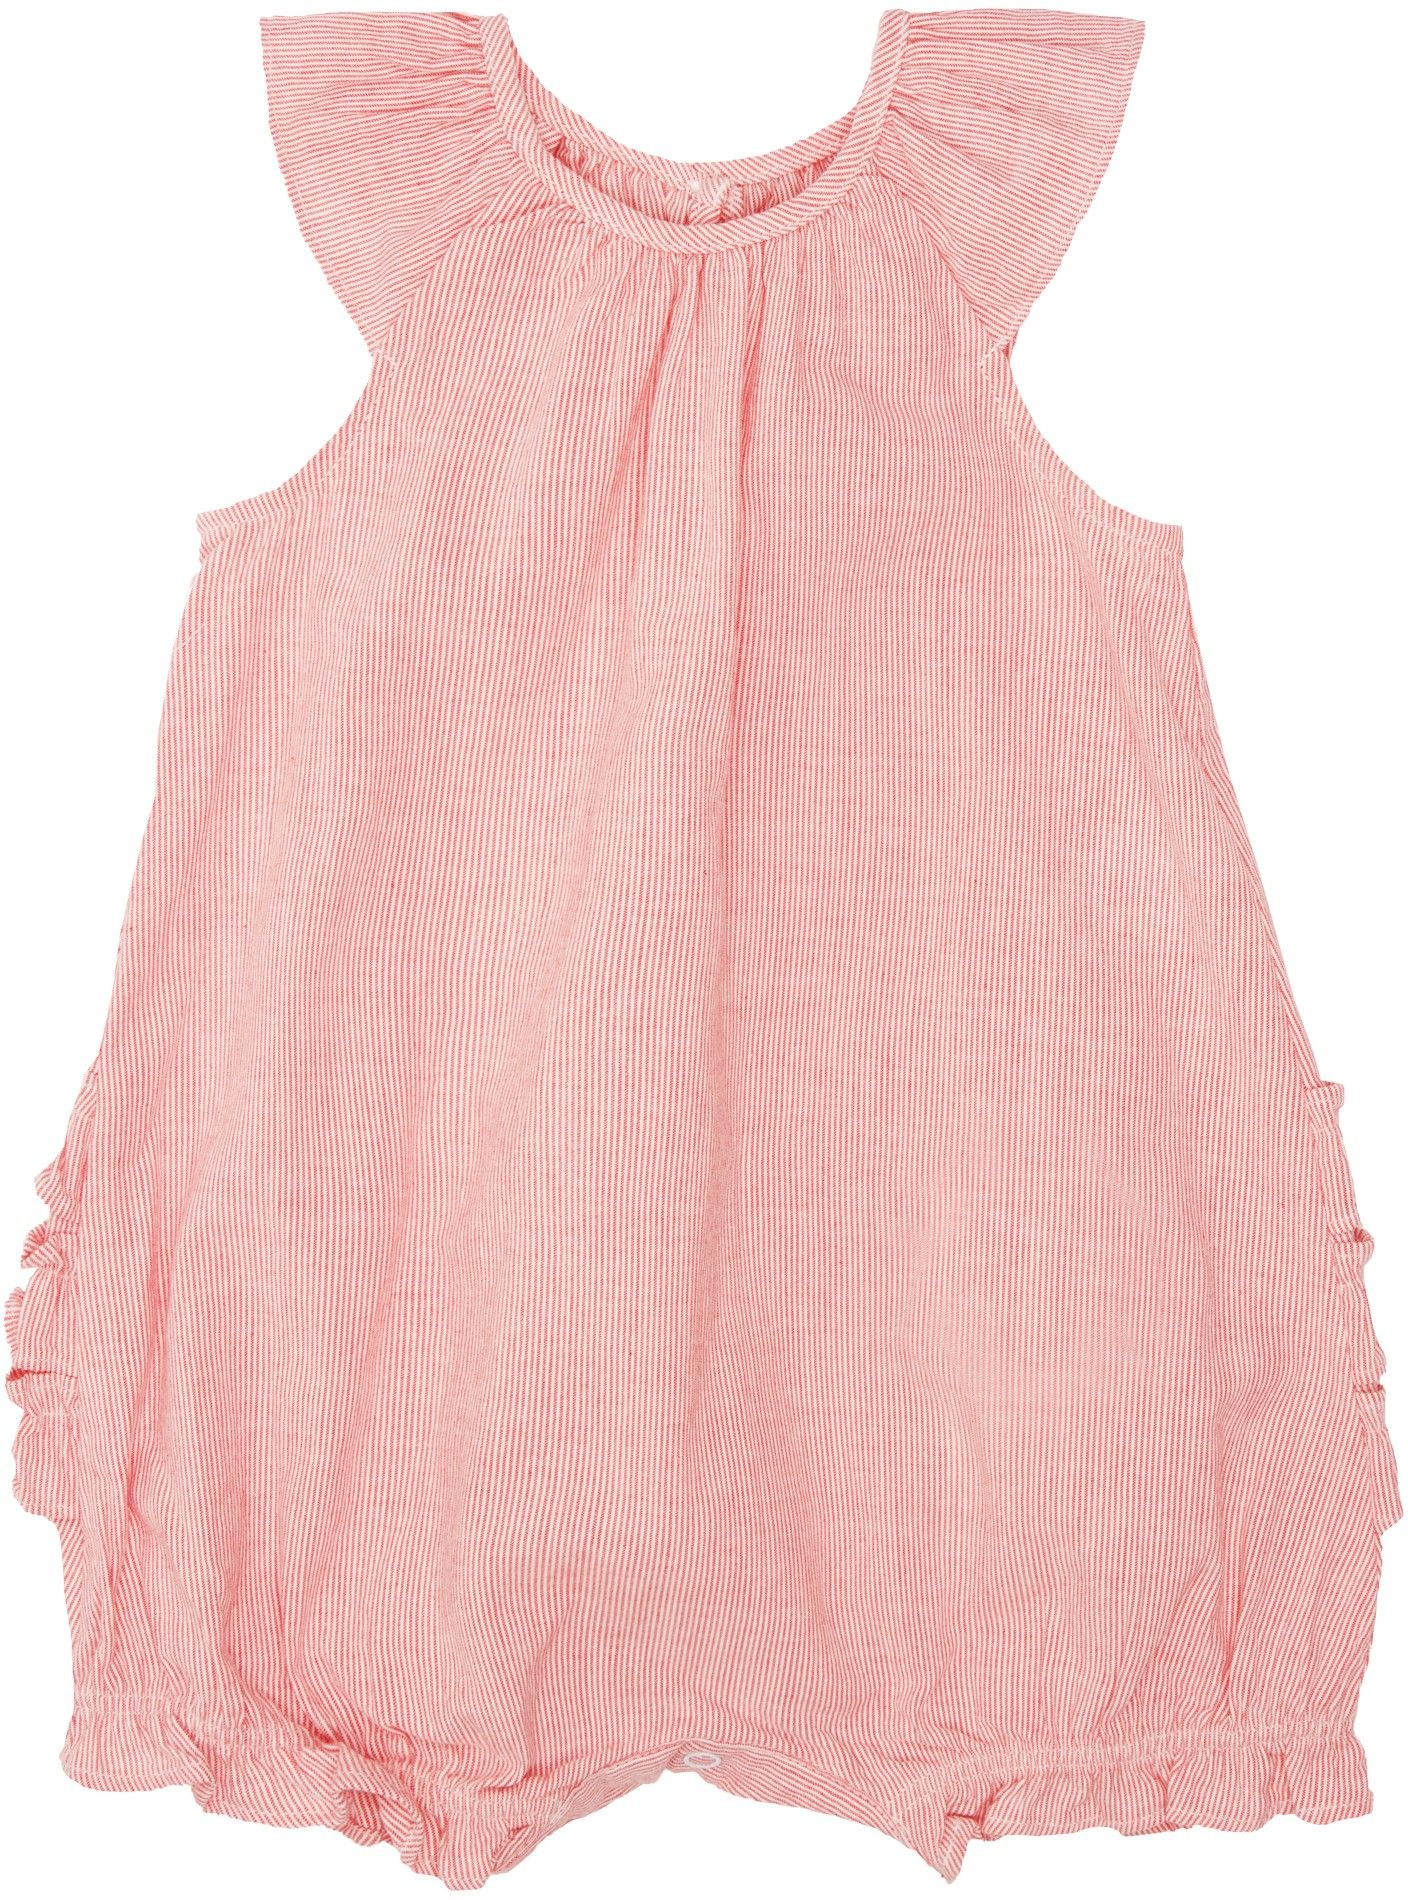 81e8977dc192 Shop The Petit Bateau Girls Malena Baby Body In Red At Elias   Grace ...